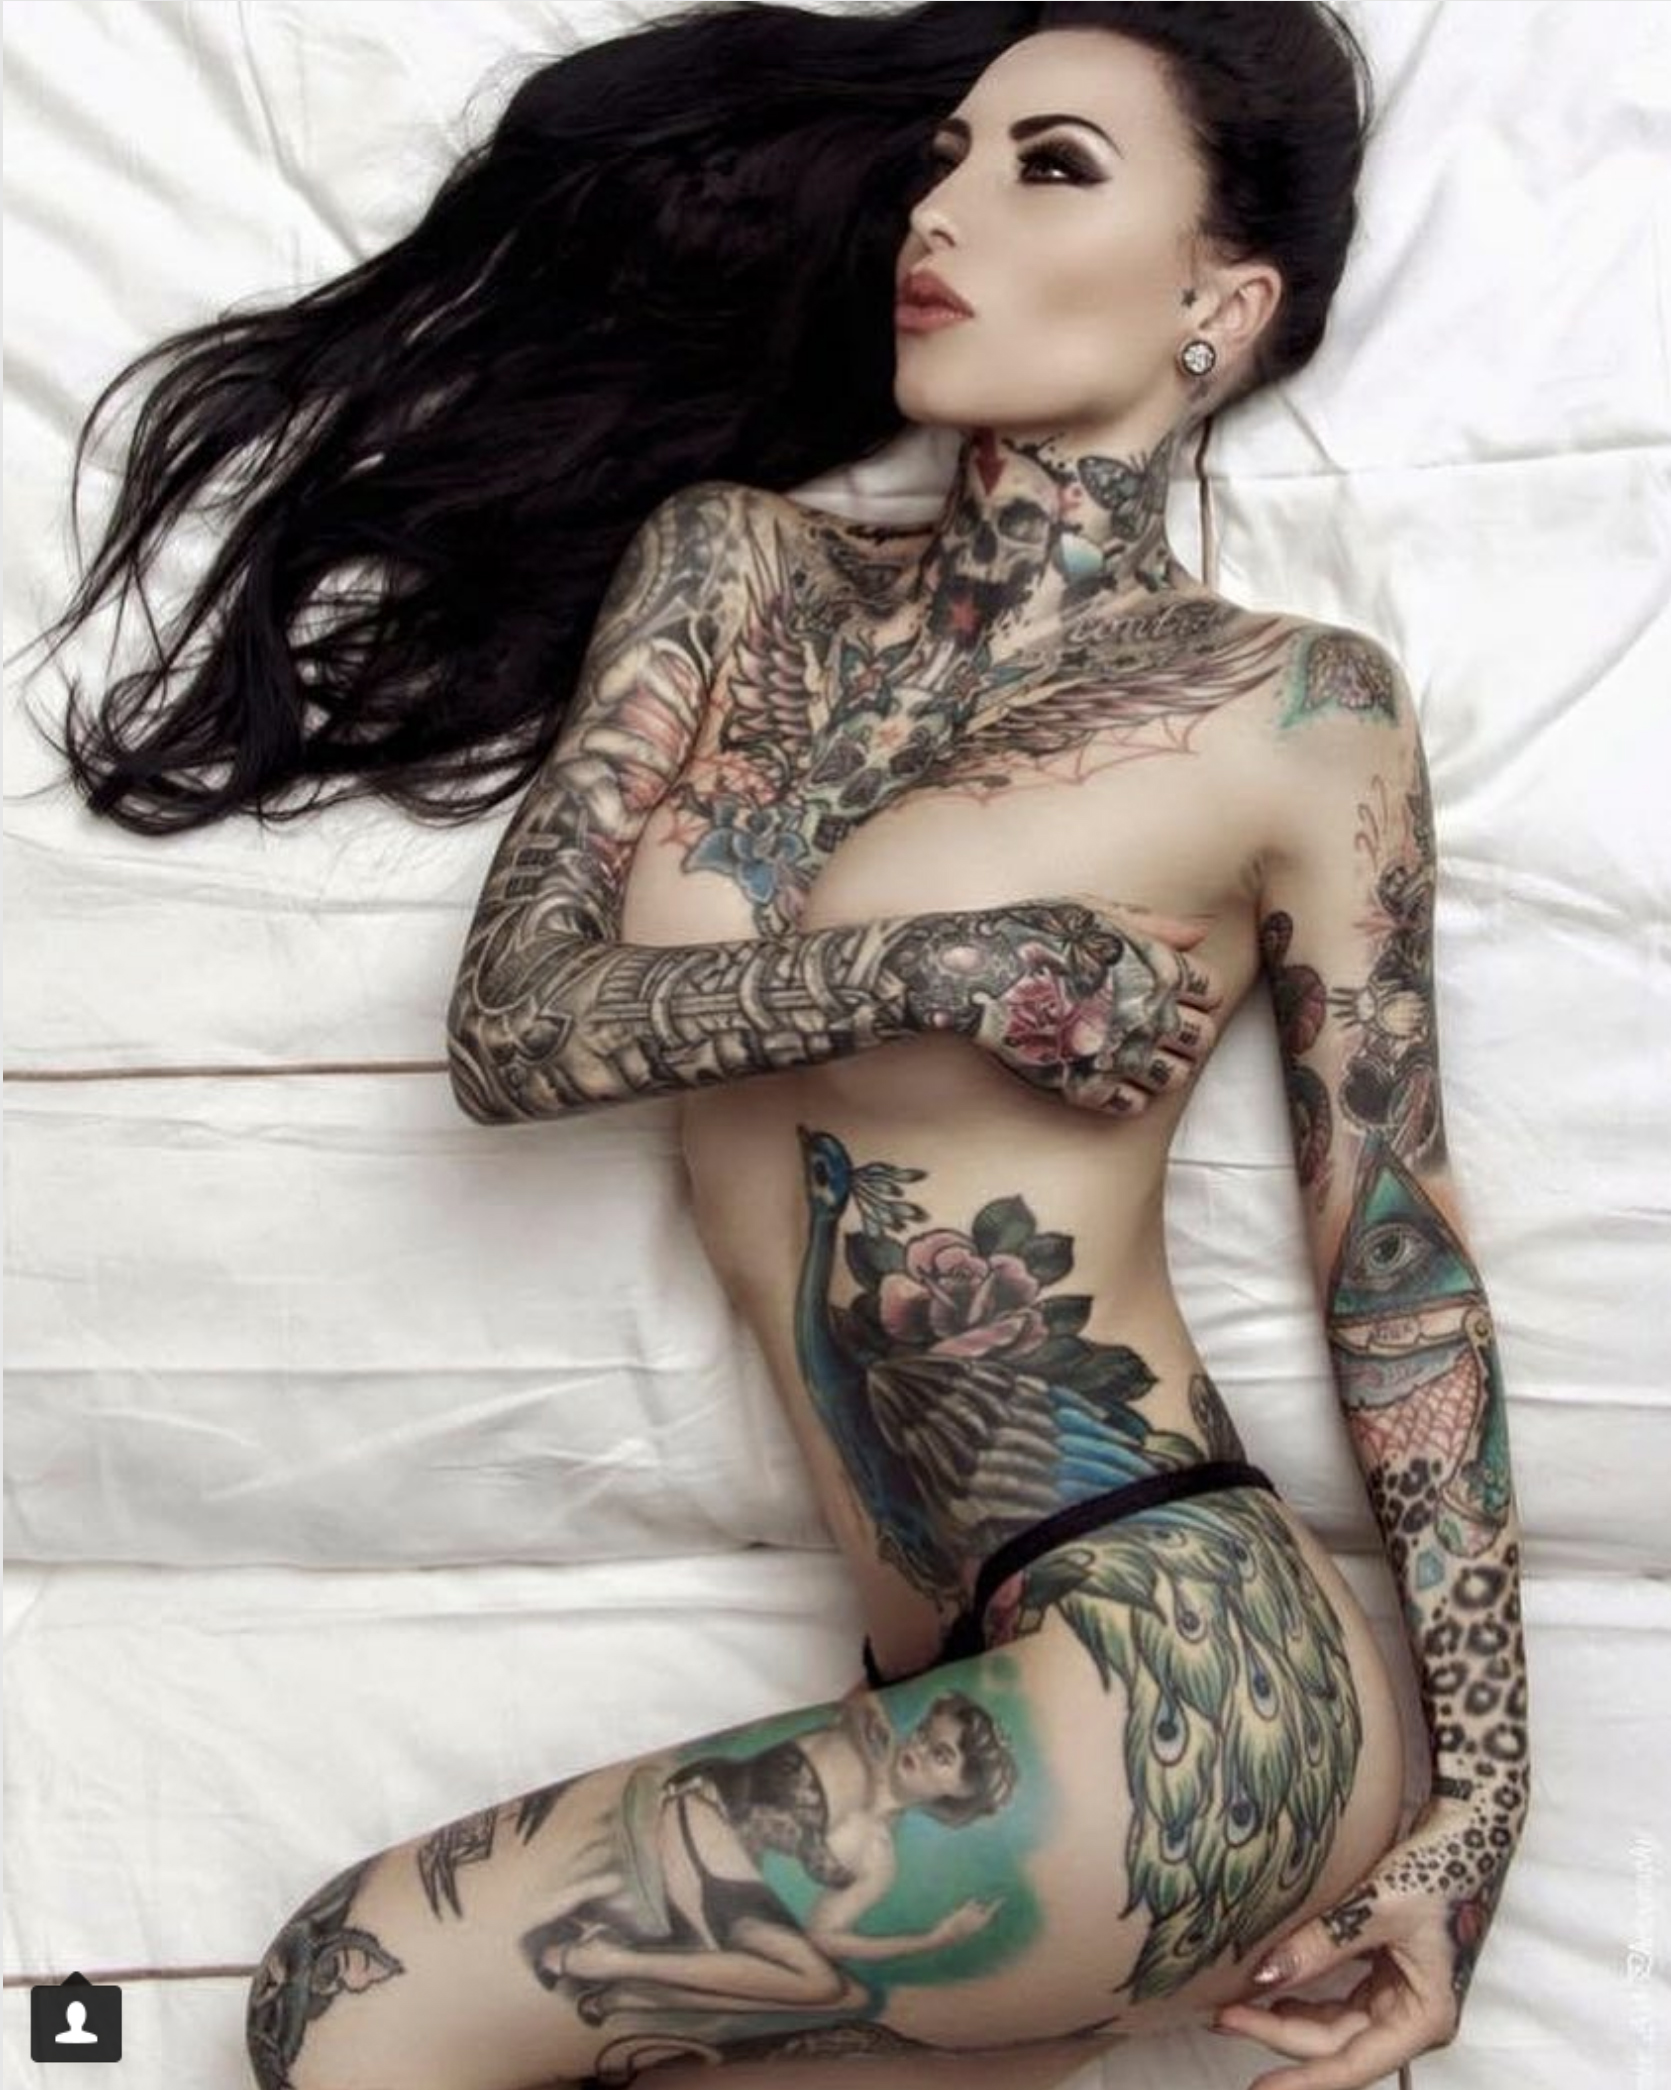 This Beautiful Tattoo Model Gets a Tattoo With The DNA of Her Cat